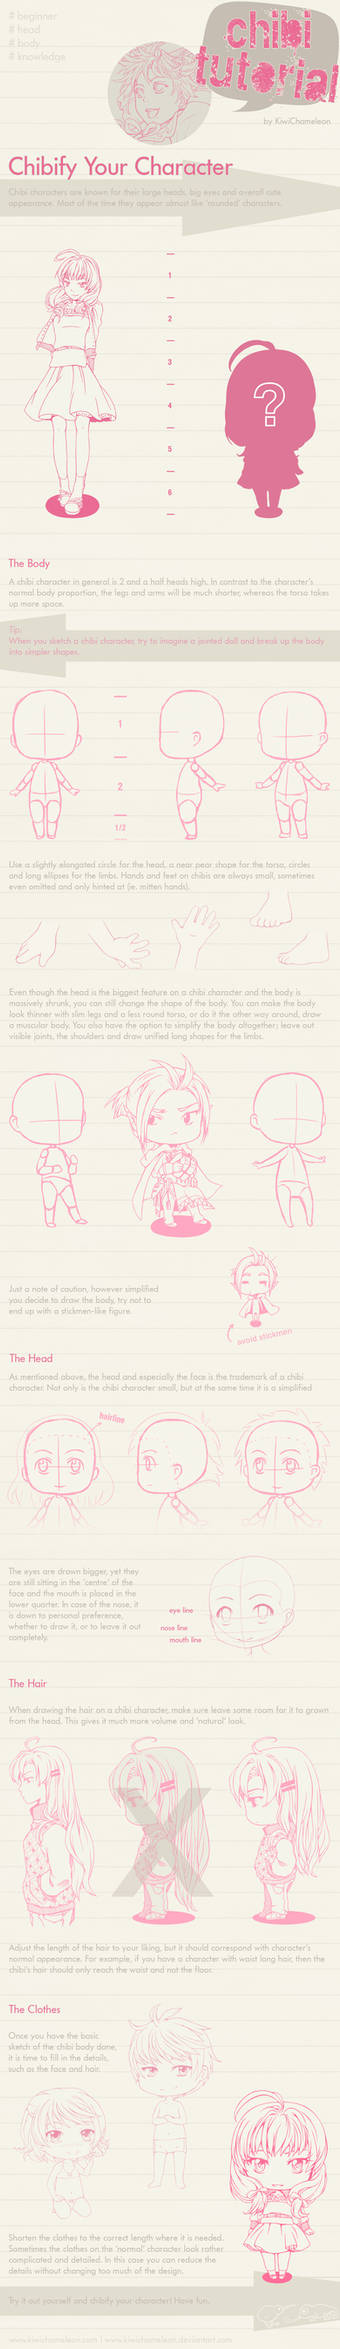 Chibify Your Character - Tutorial